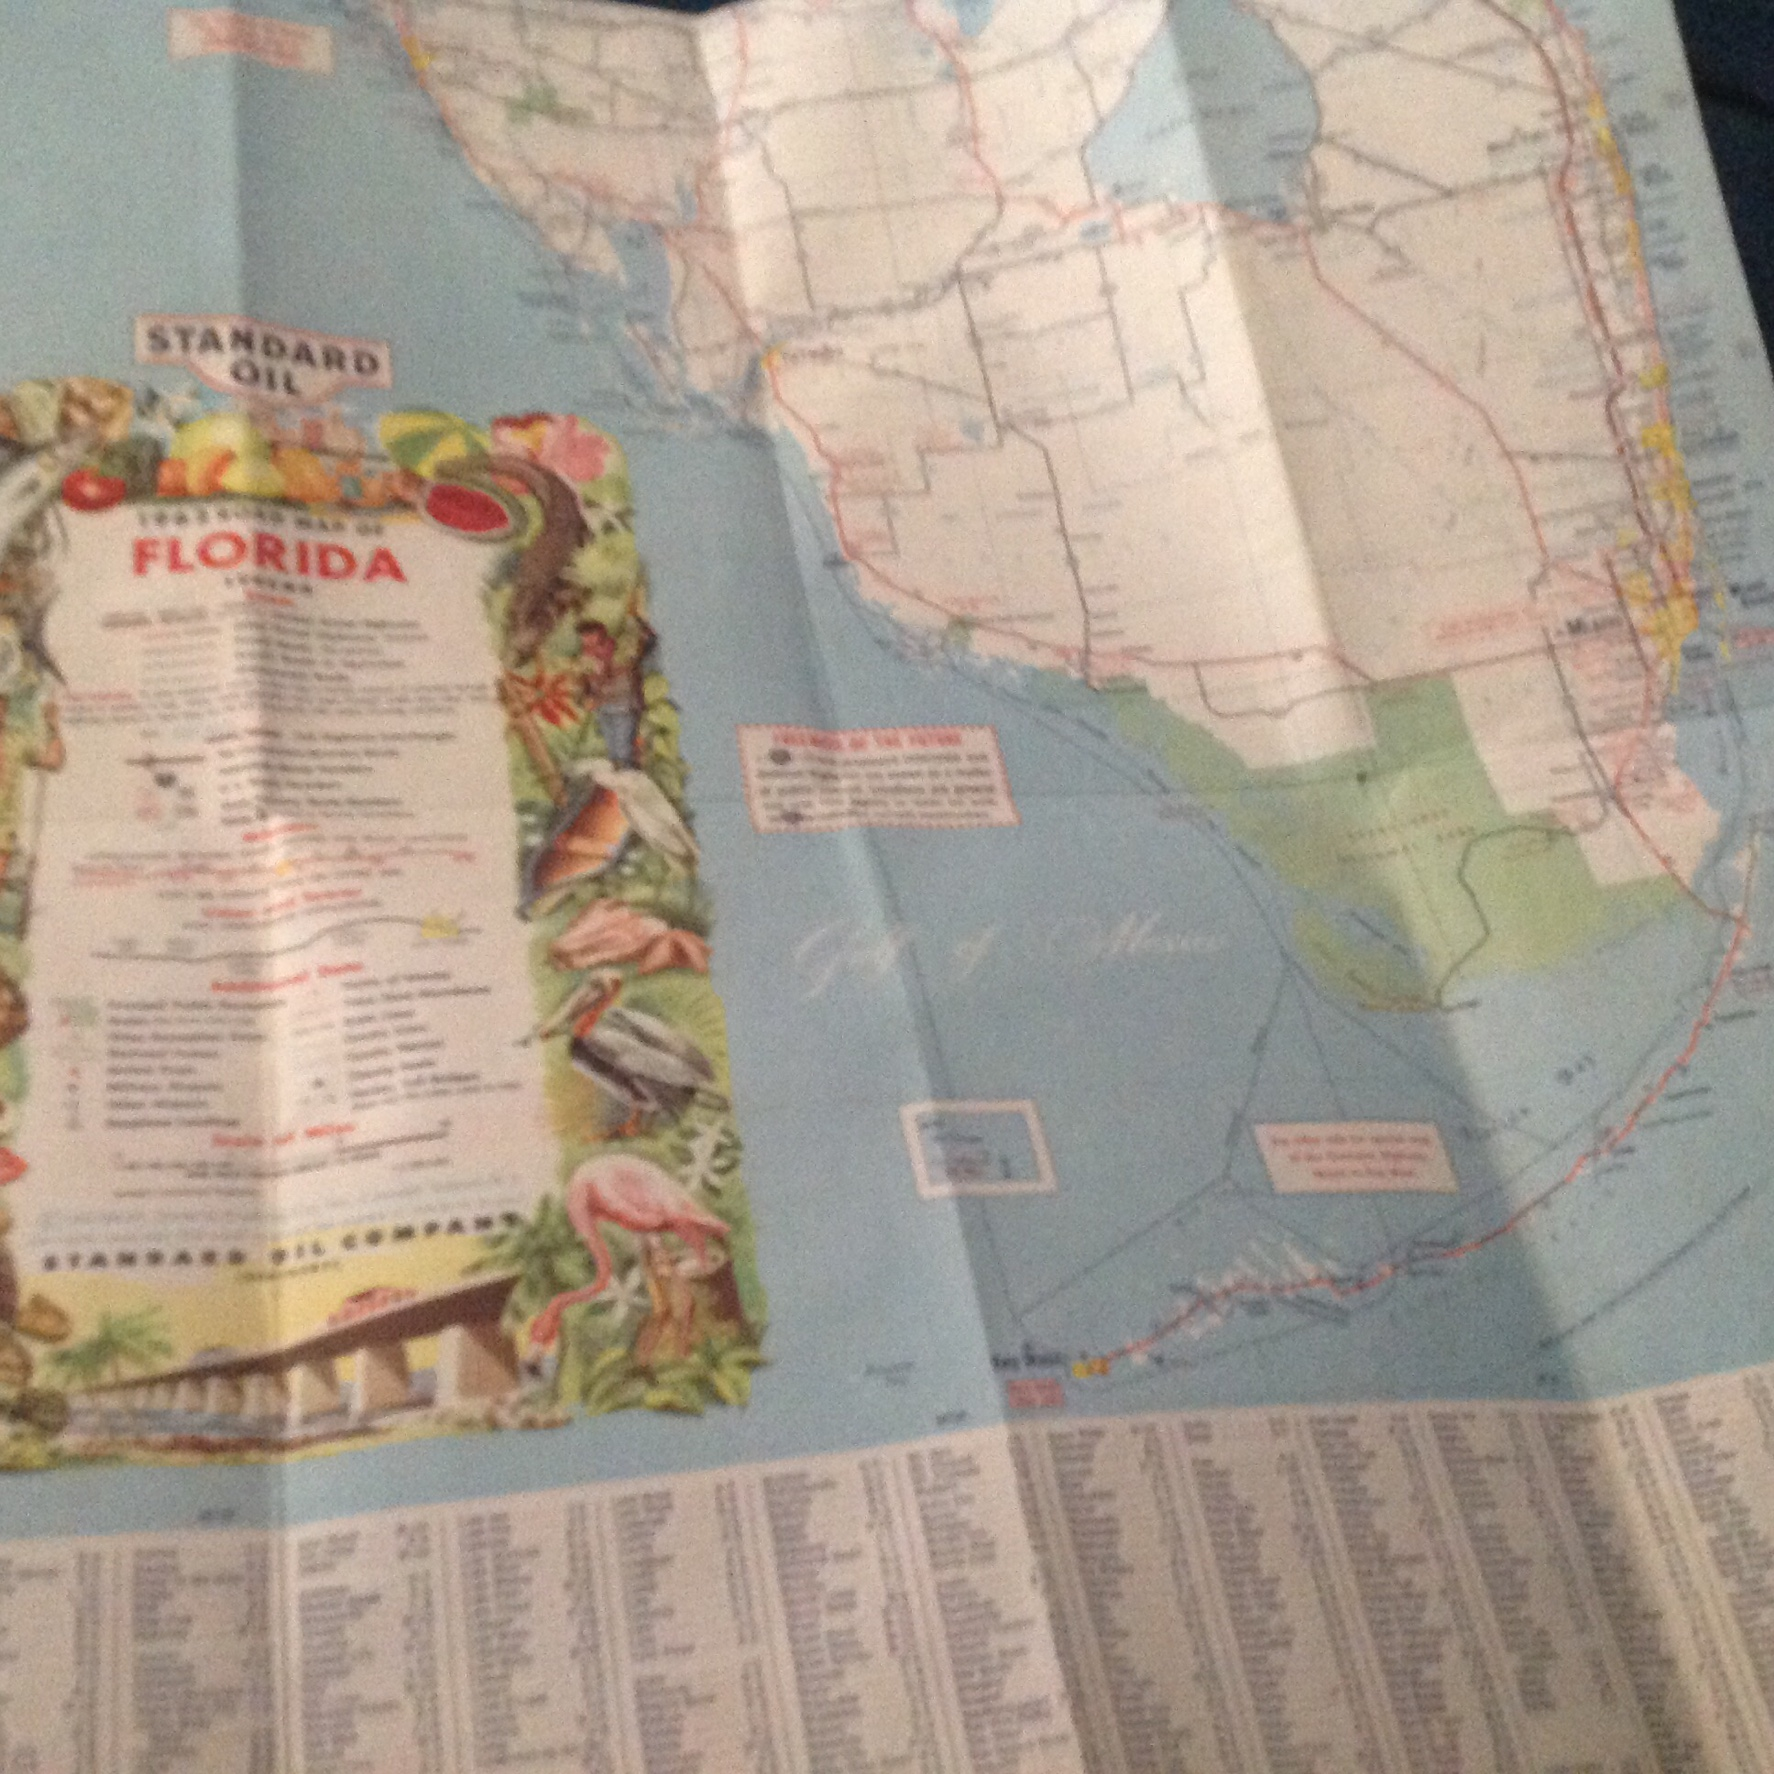 Florida Road Map 2015.Flashback Friday Road Map Of Florida In 1962 The Florida Squeeze